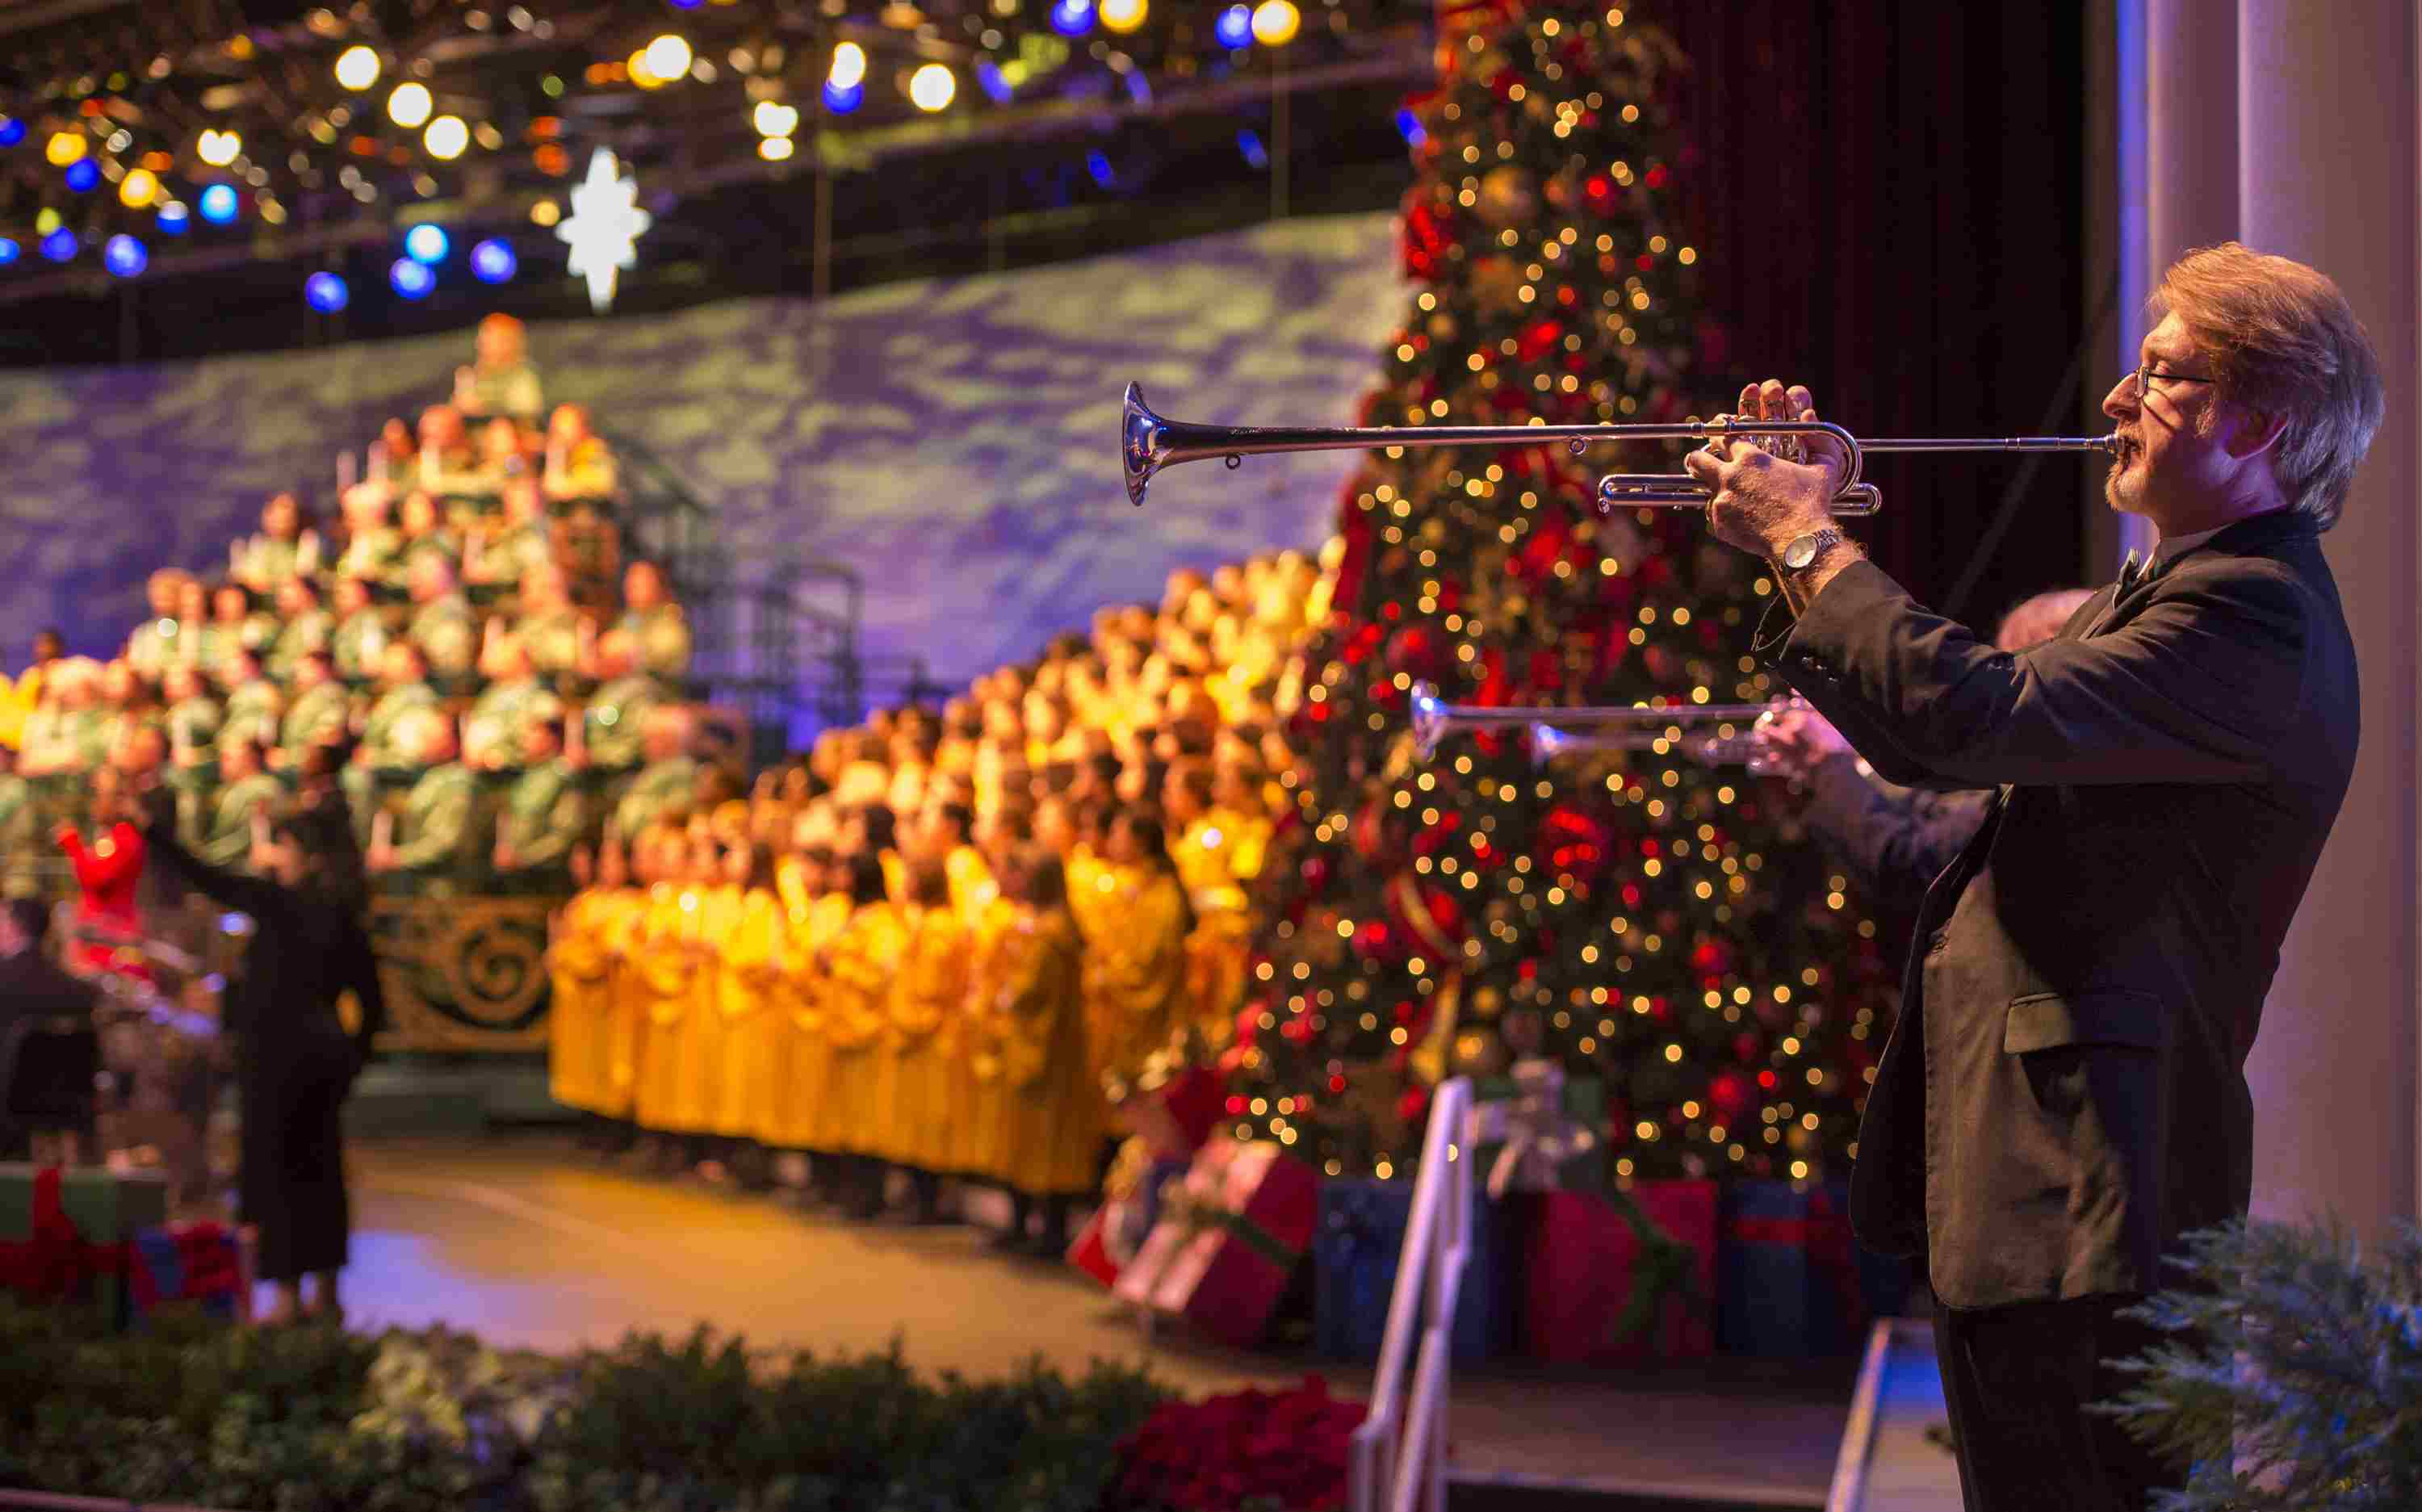 Candlelight Processional during Epcot International Festival of the Holidays